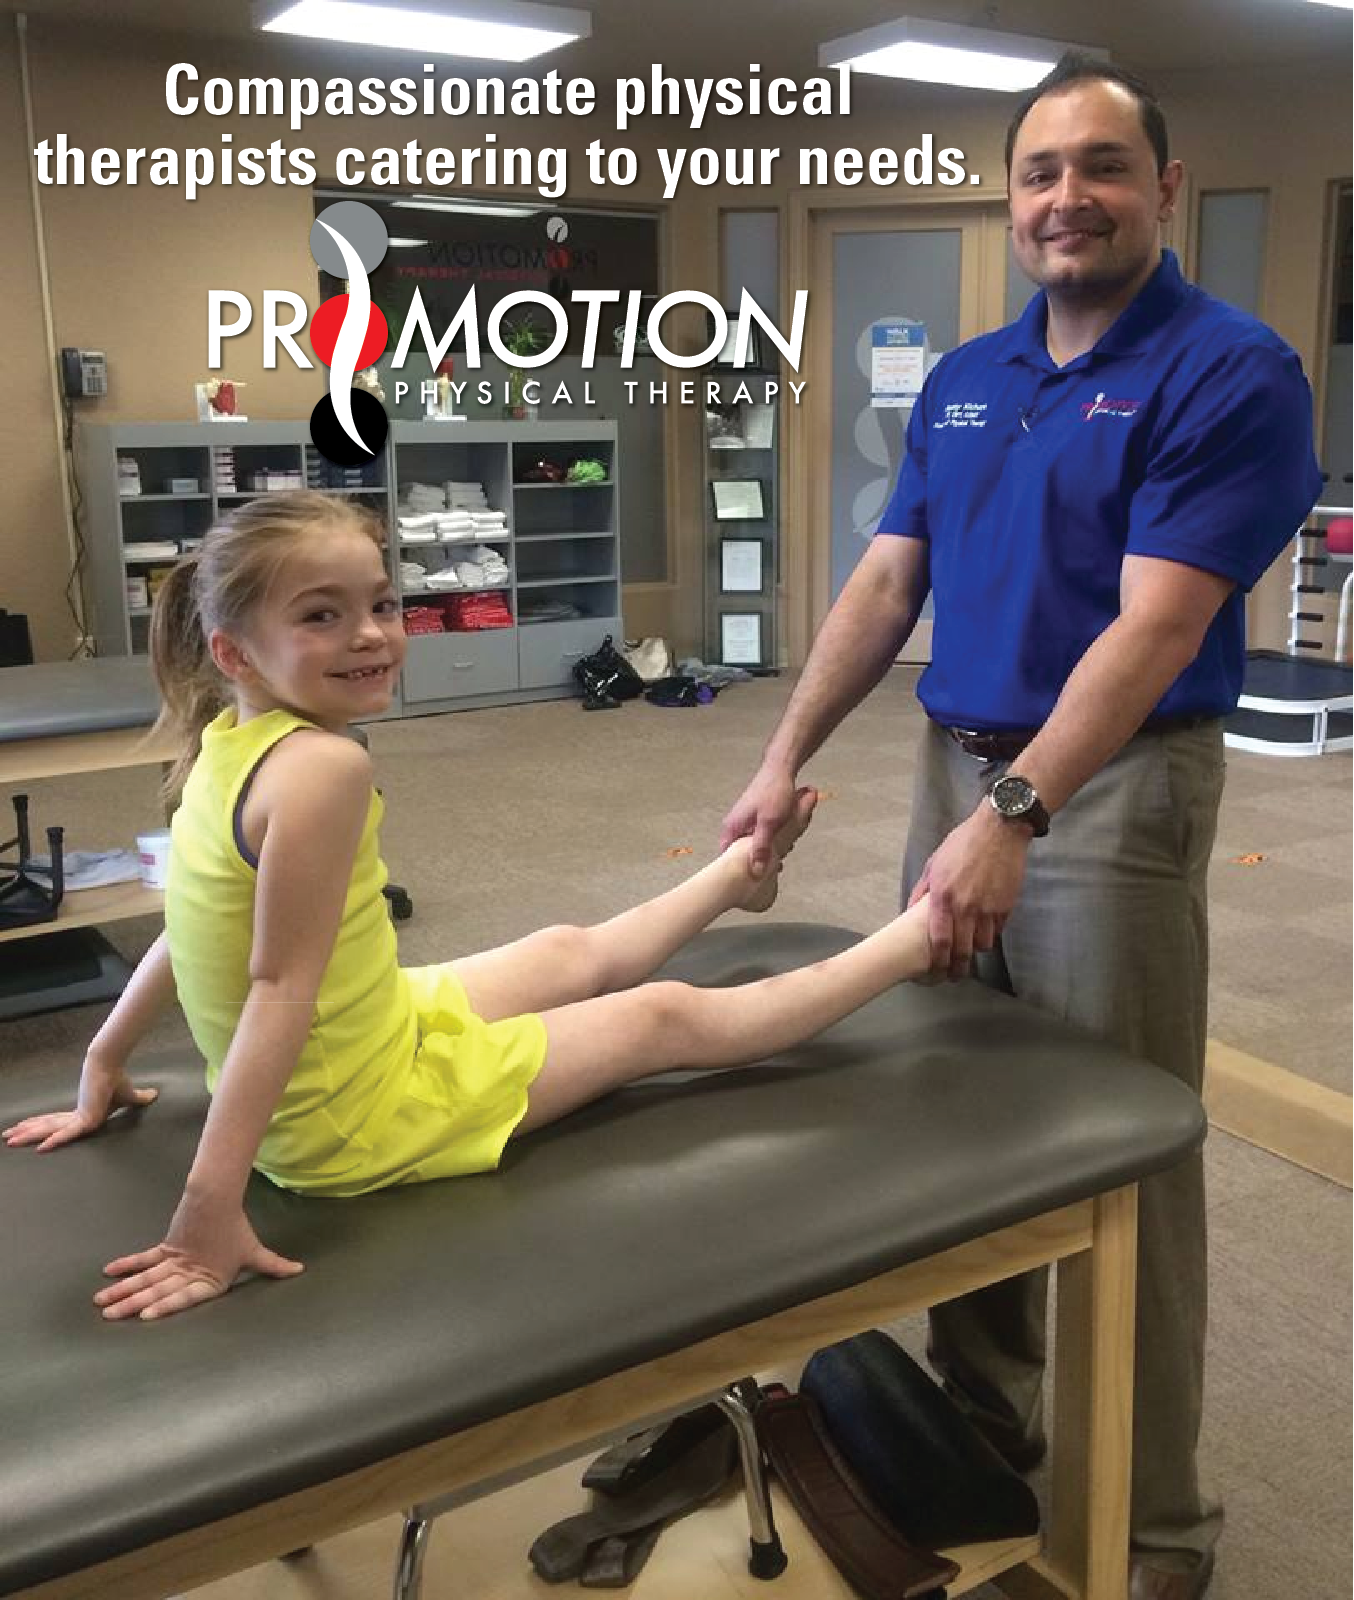 Who needs physical therapy - Discover A This Year With Our Compassionate Physical Therapists Who Will Cater To Your Specific Physical Therapy Needs